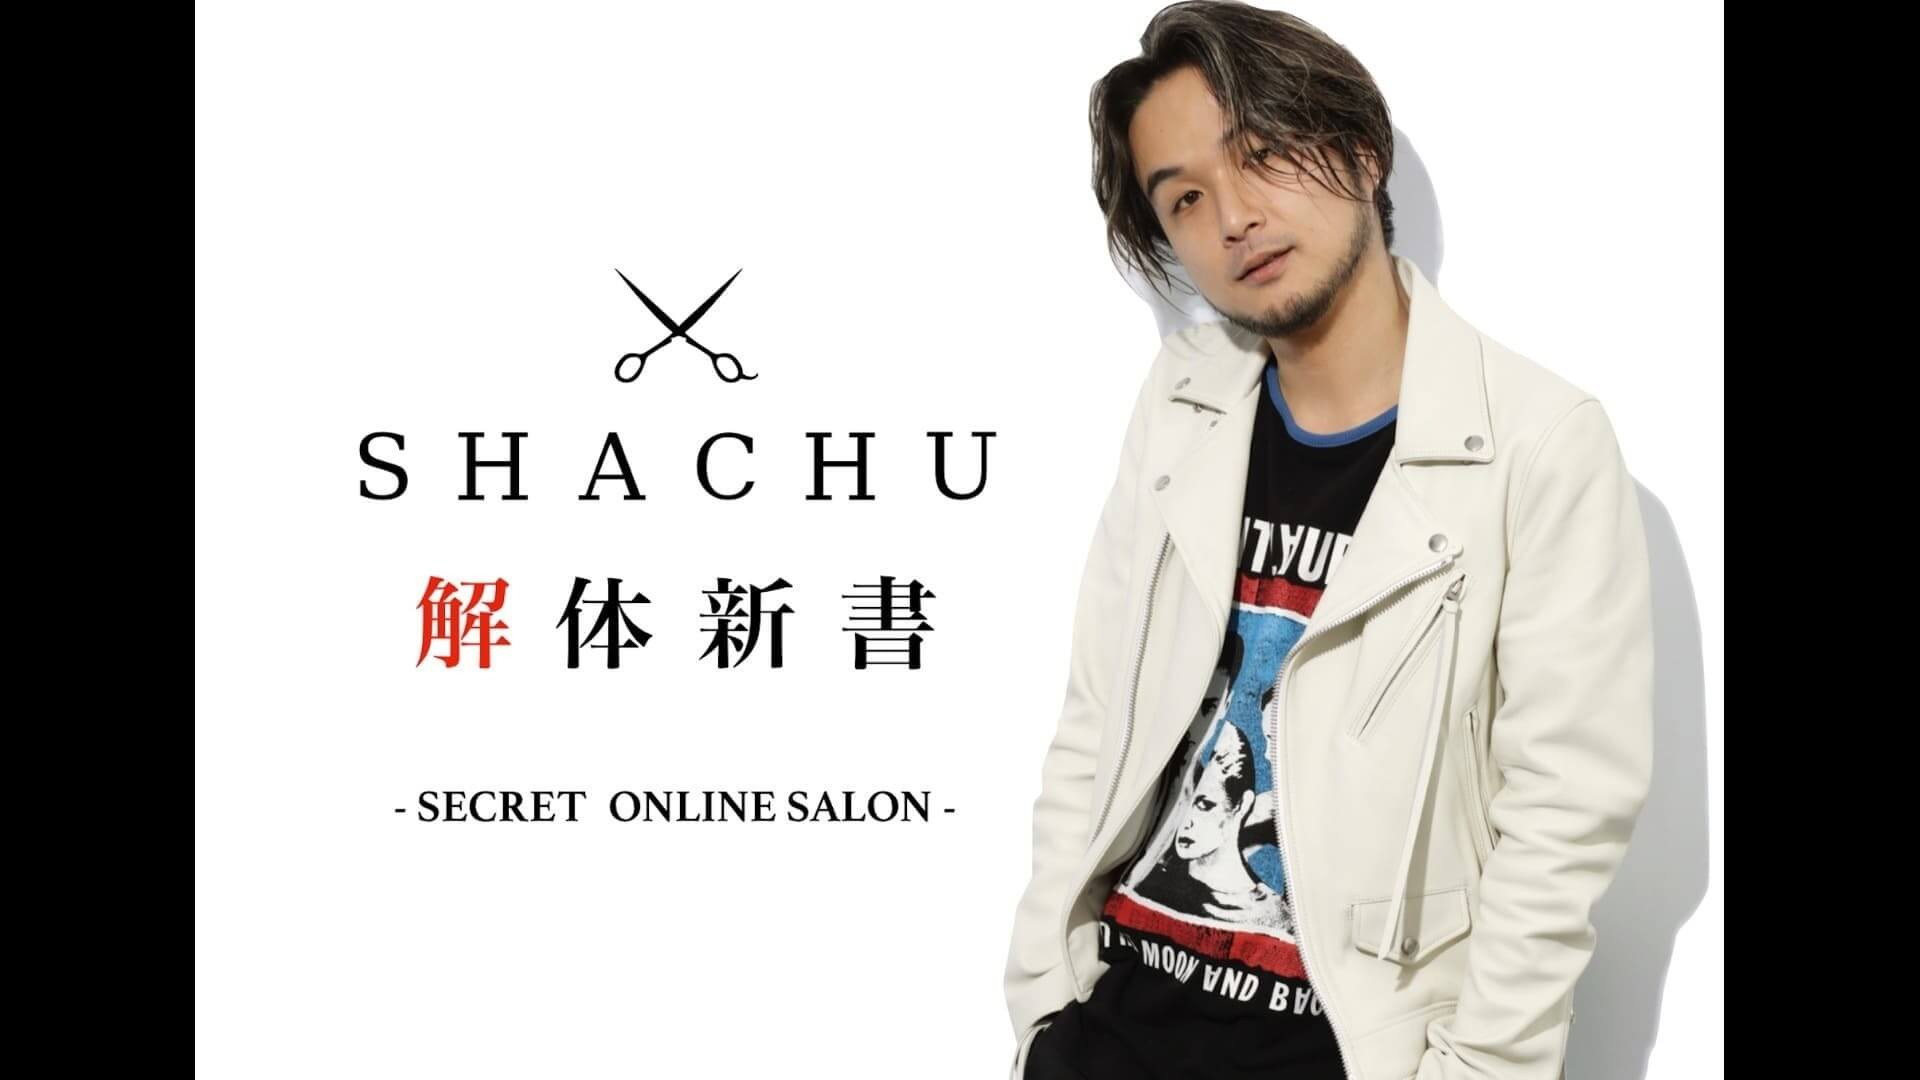 SHACHU解体新書 -SECRET ONLINE SALON-